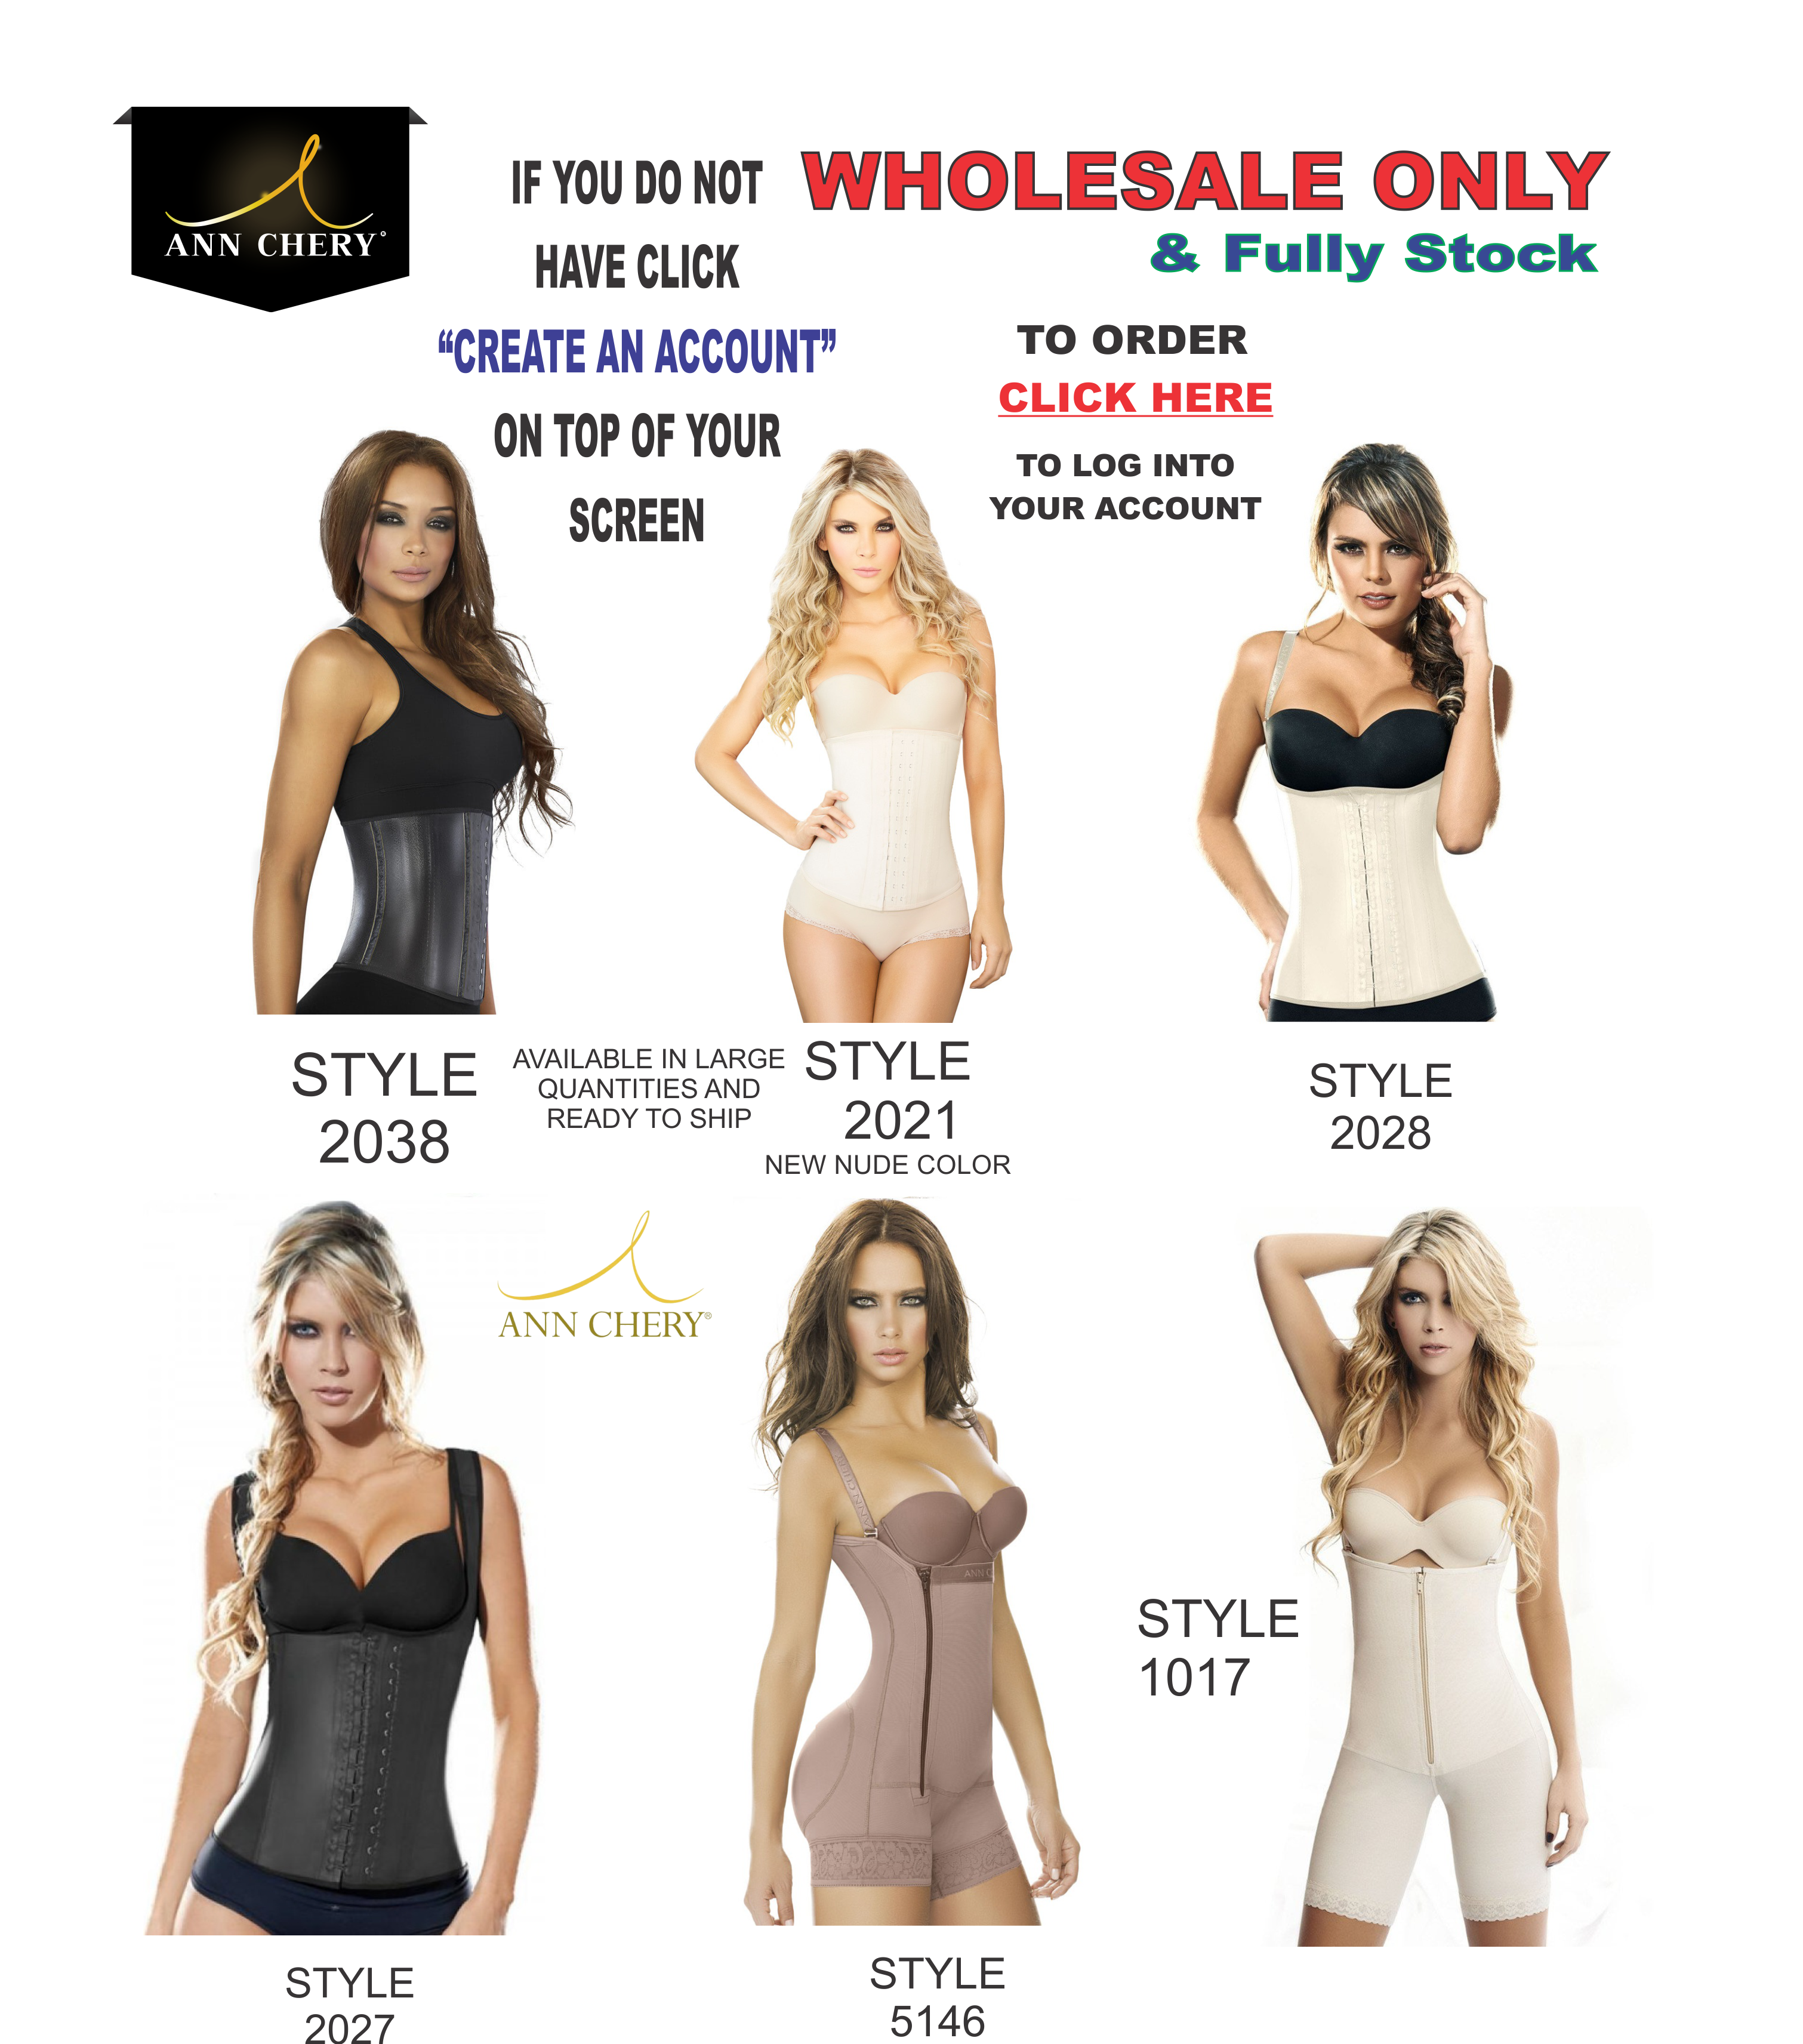 ann-chery-wholesale-banner-2-15-18.png